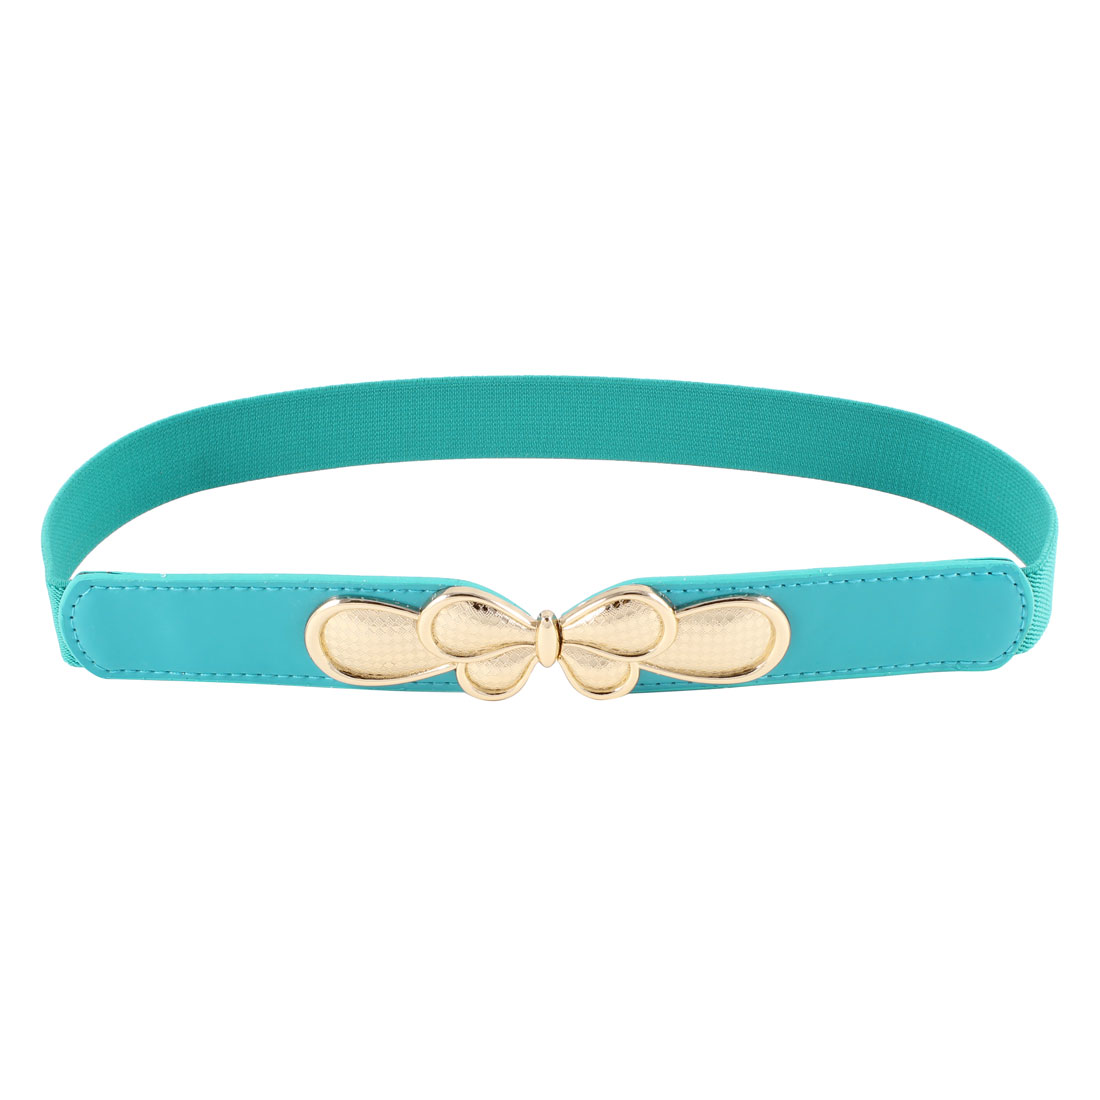 Women Butterfly Interlock Buckle Thin Skinny Waistband Cinch Belt Teal Green